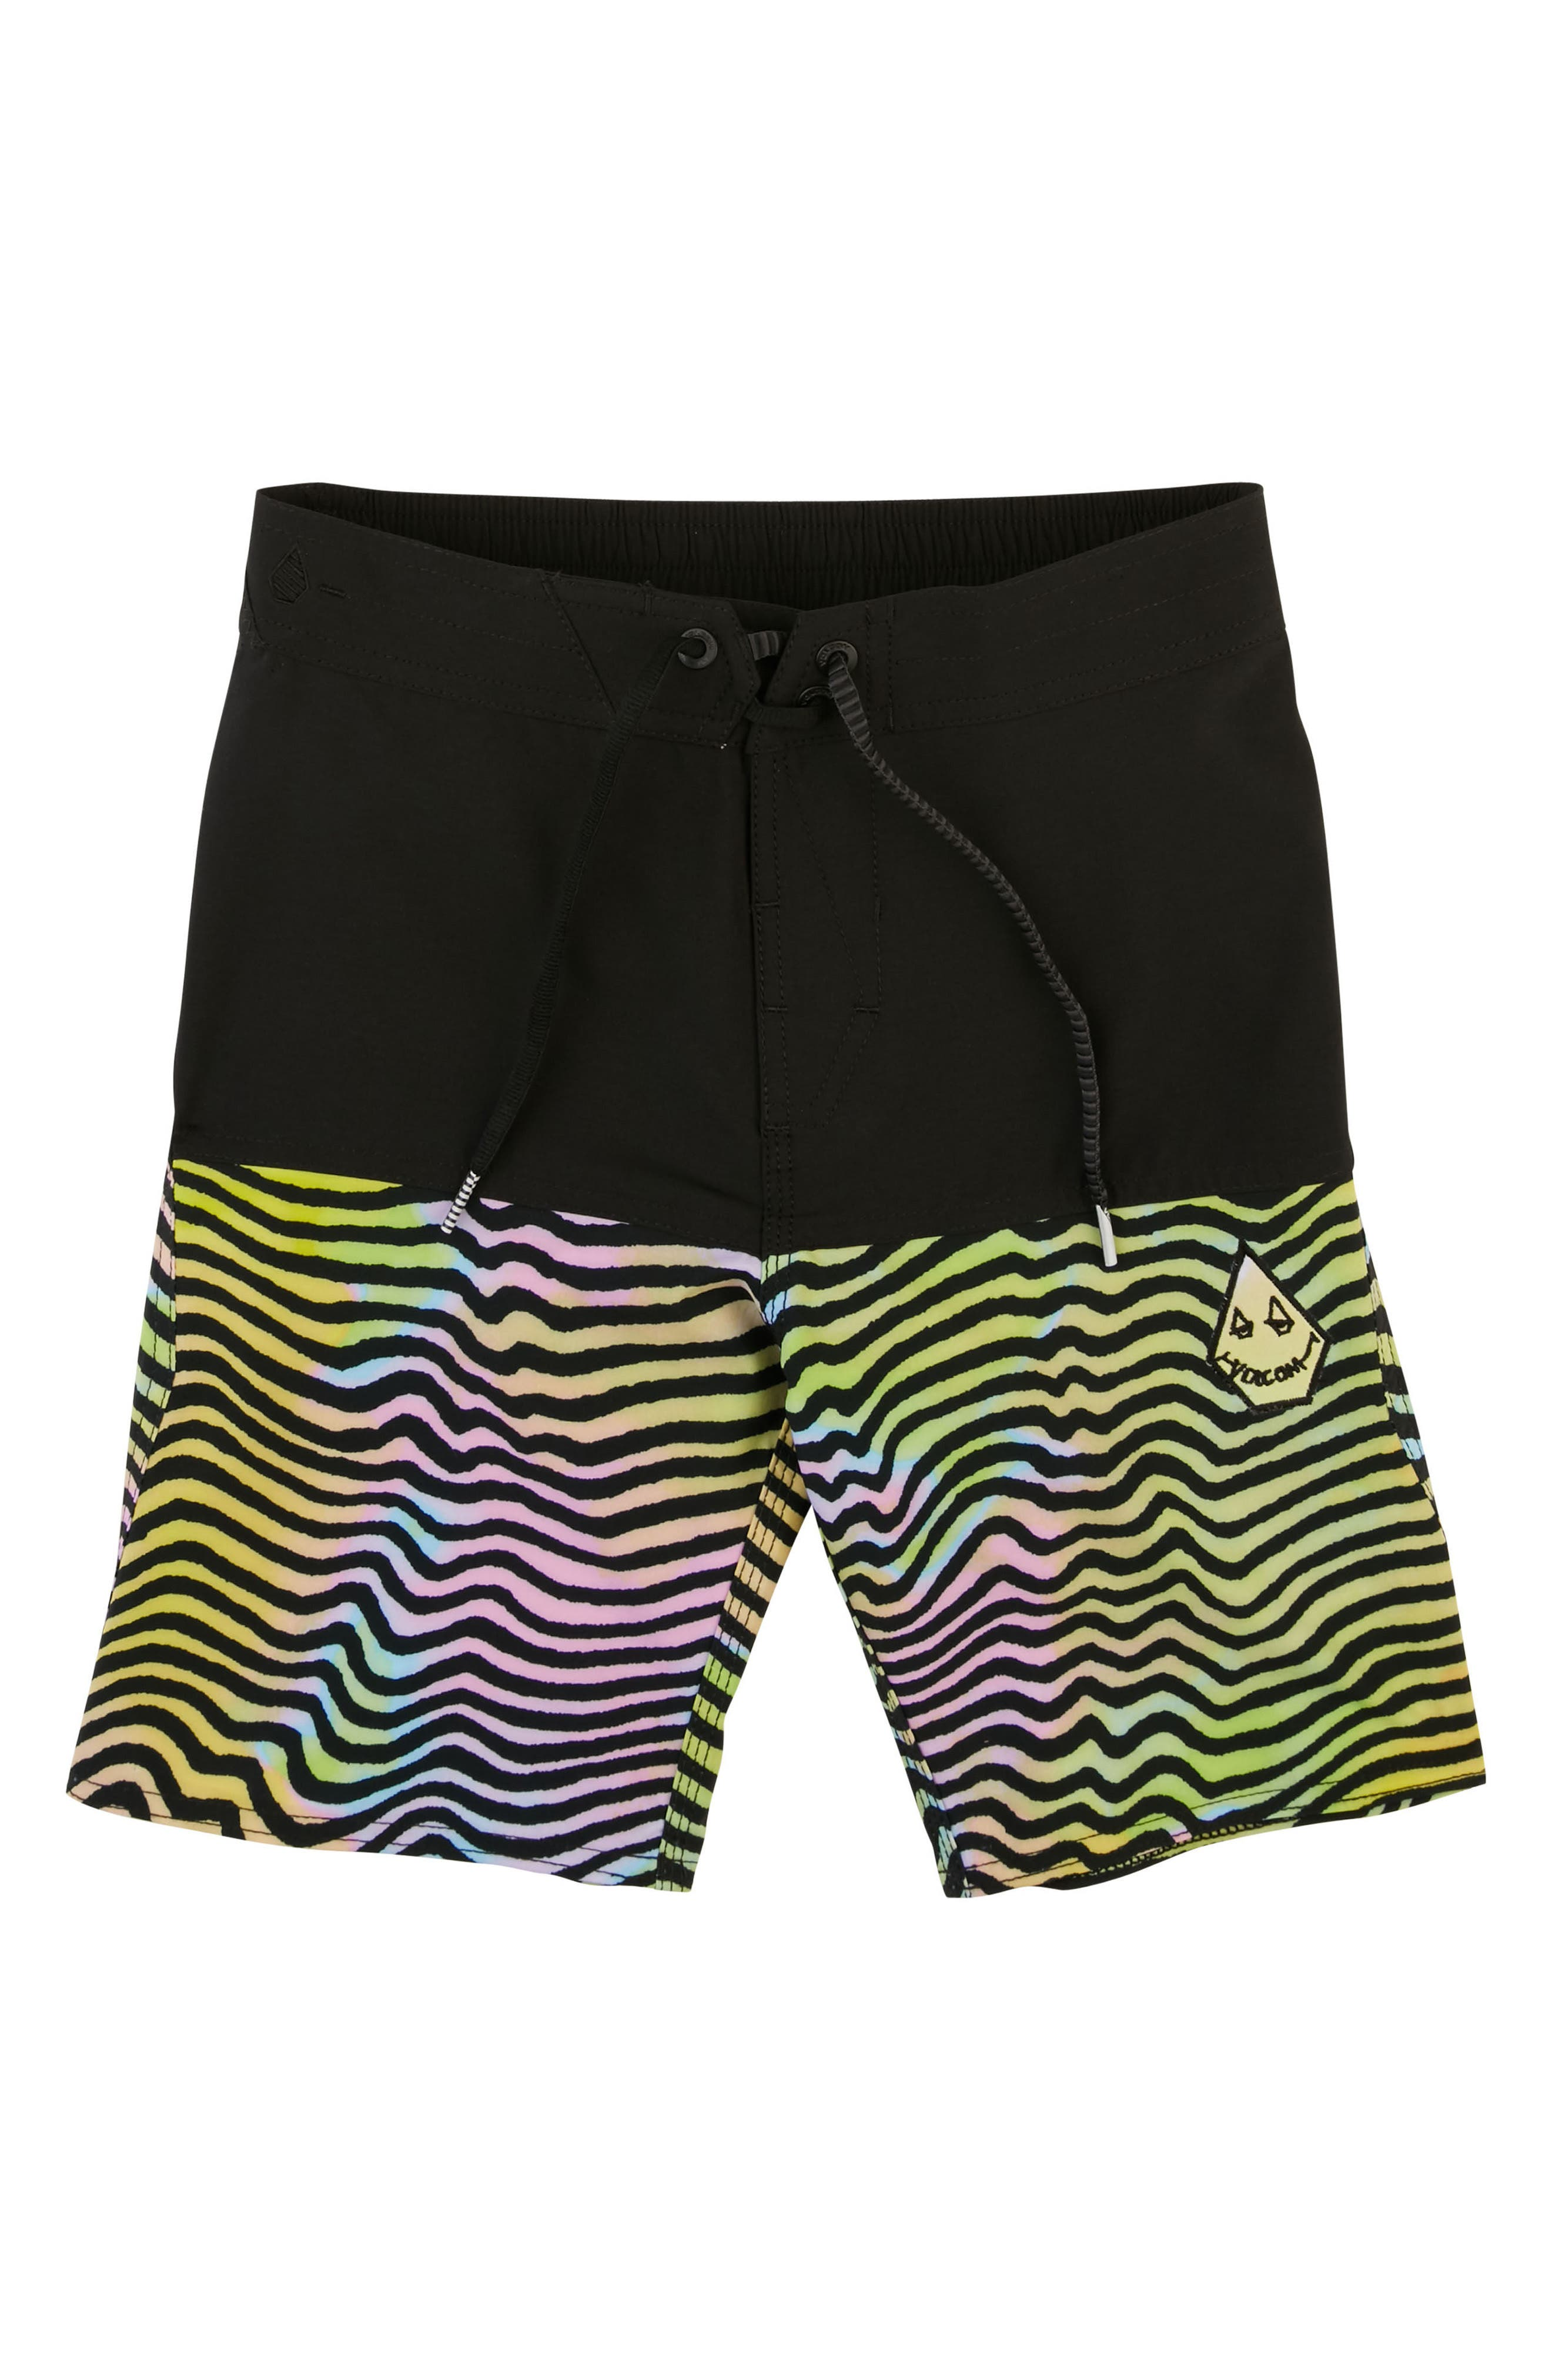 Vibes Board Shorts,                         Main,                         color, Multi